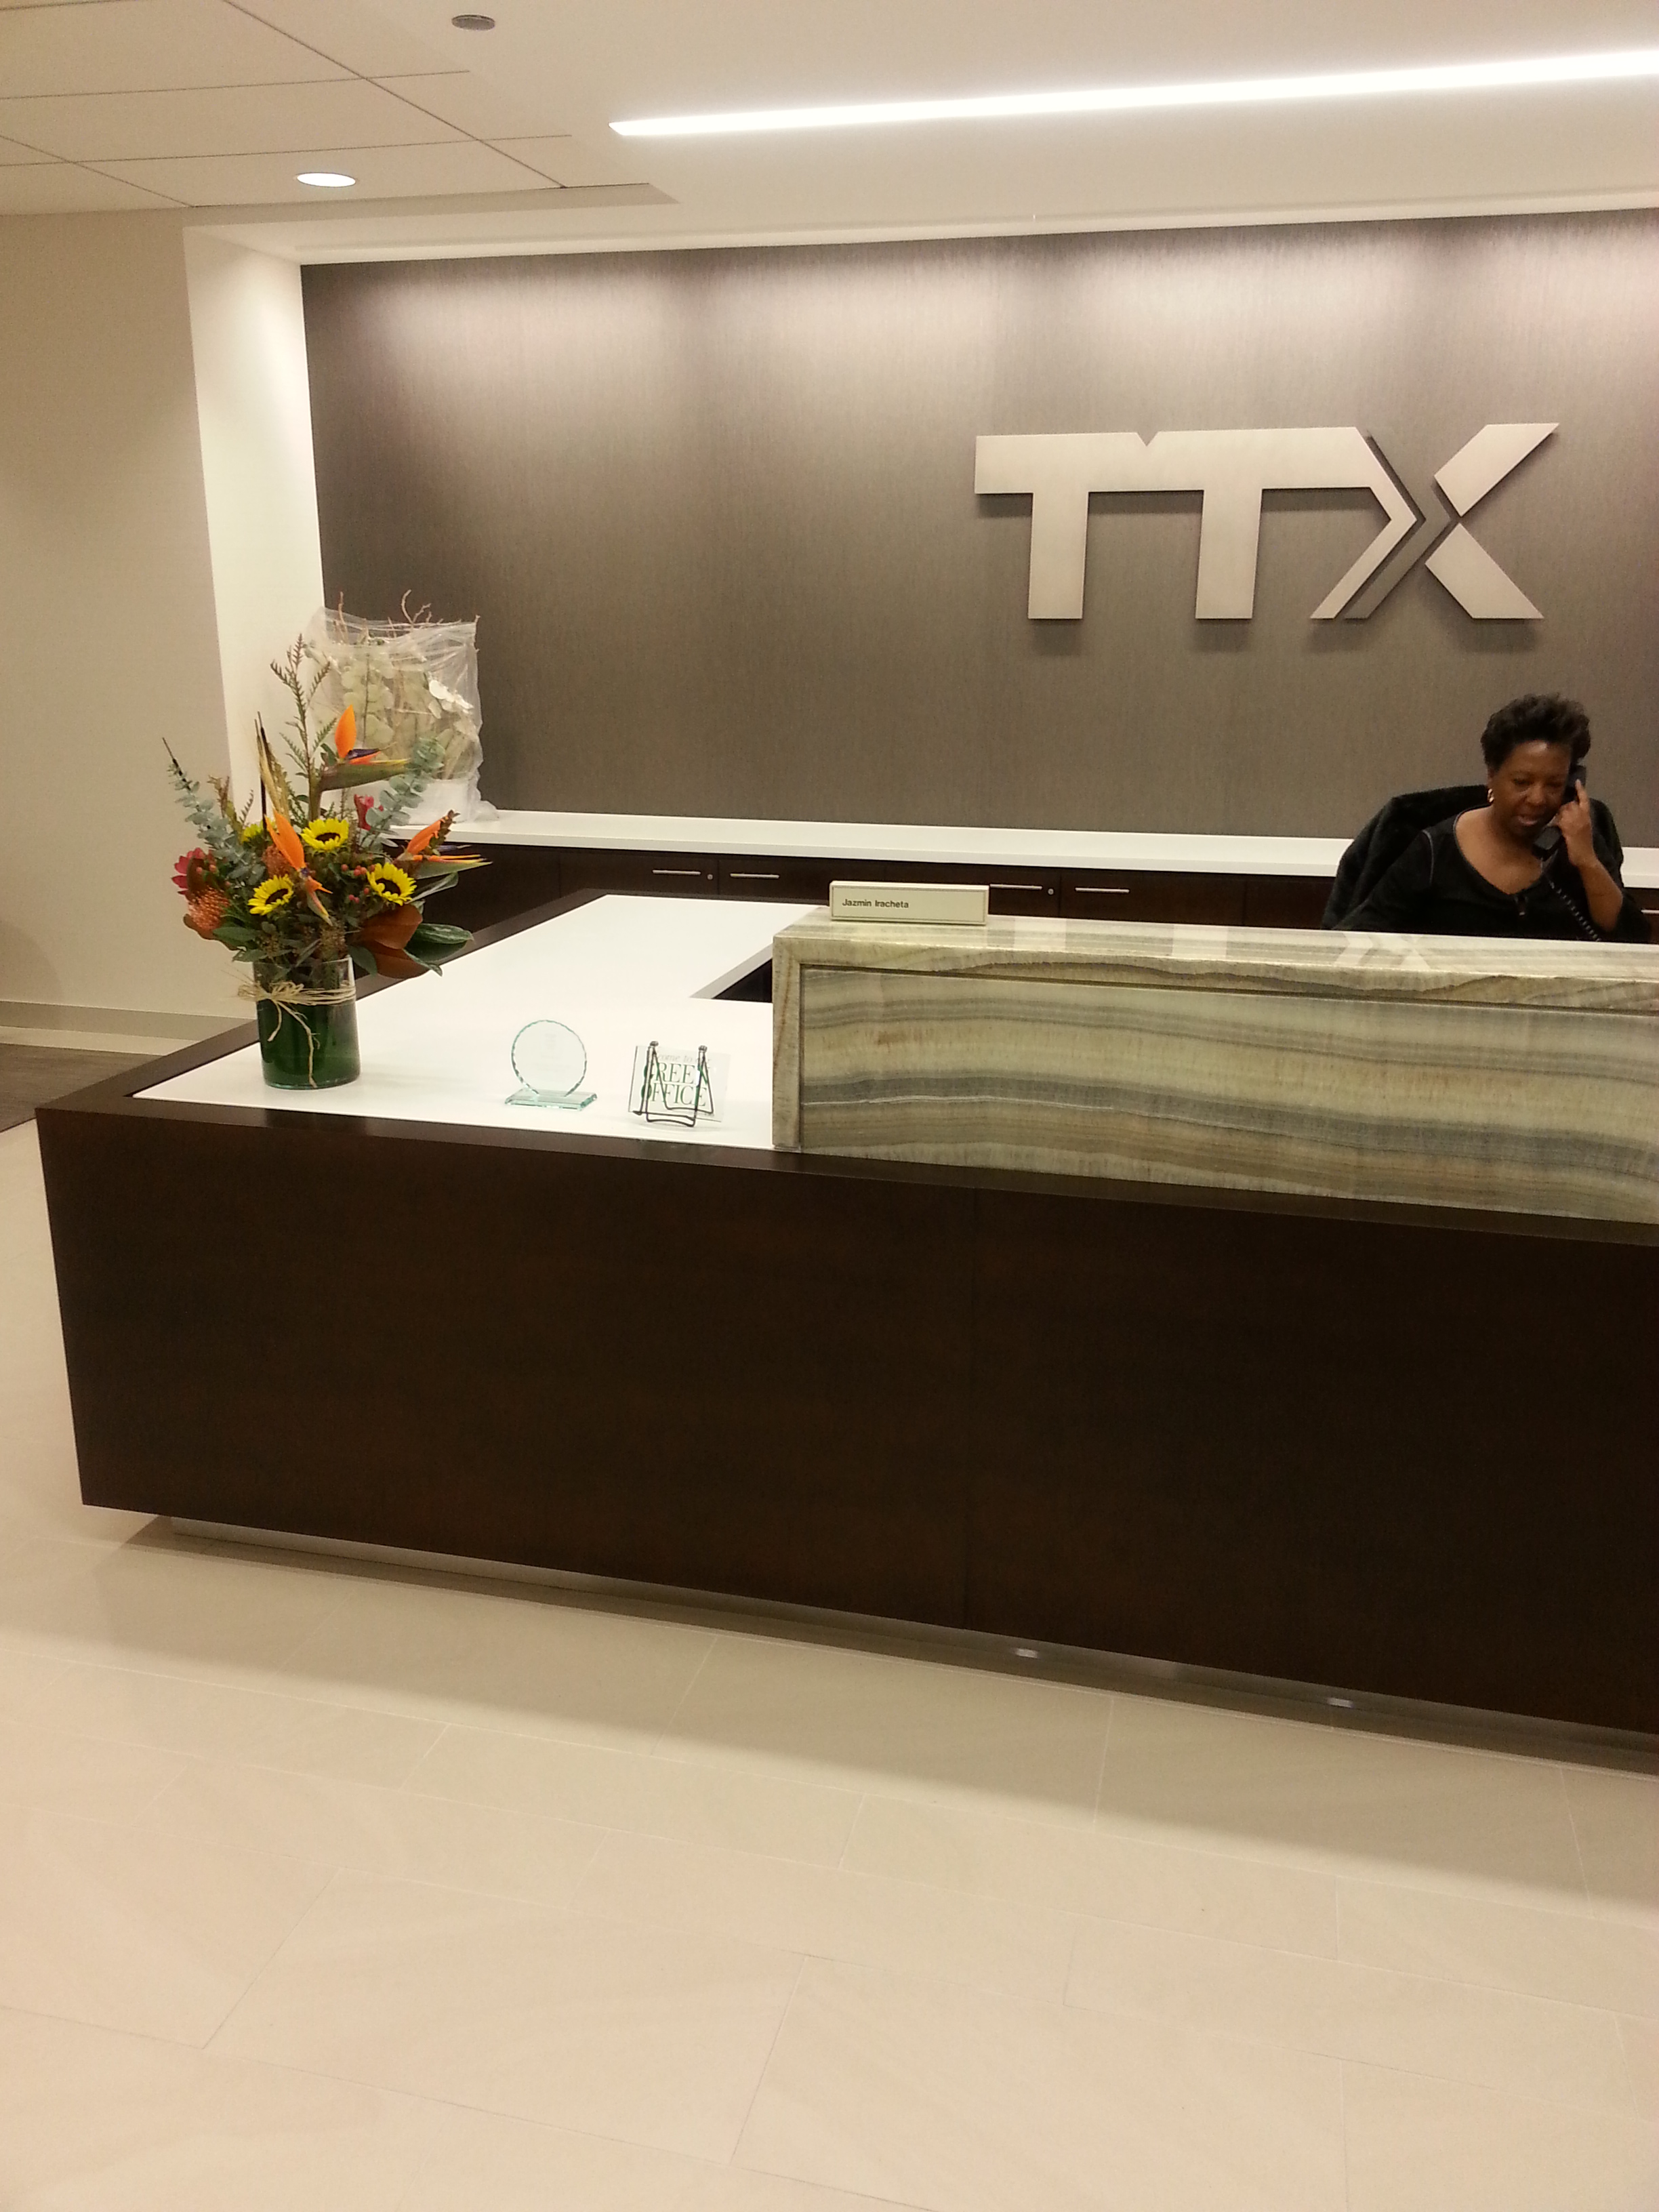 TTX RECEPTION DESK